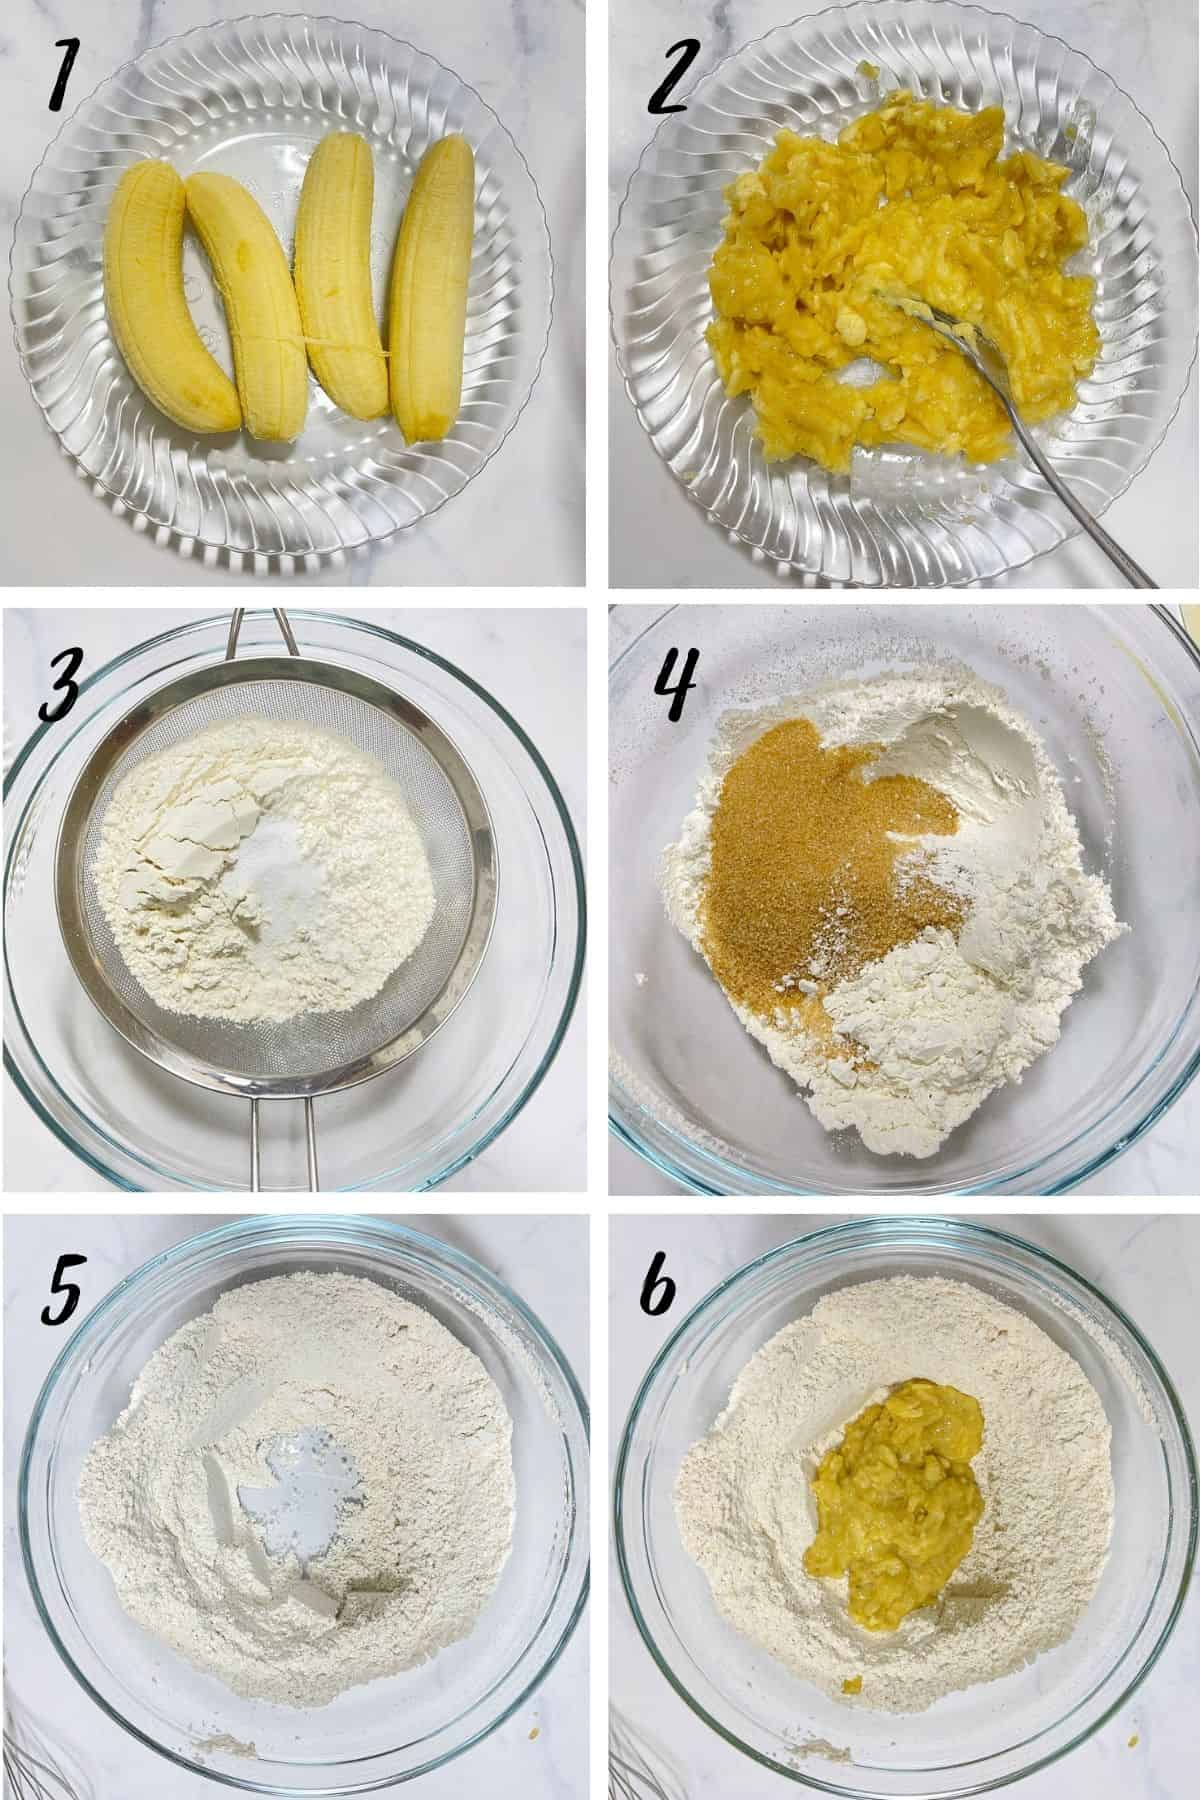 A poster of 6 images showing how to mix banana bread batter